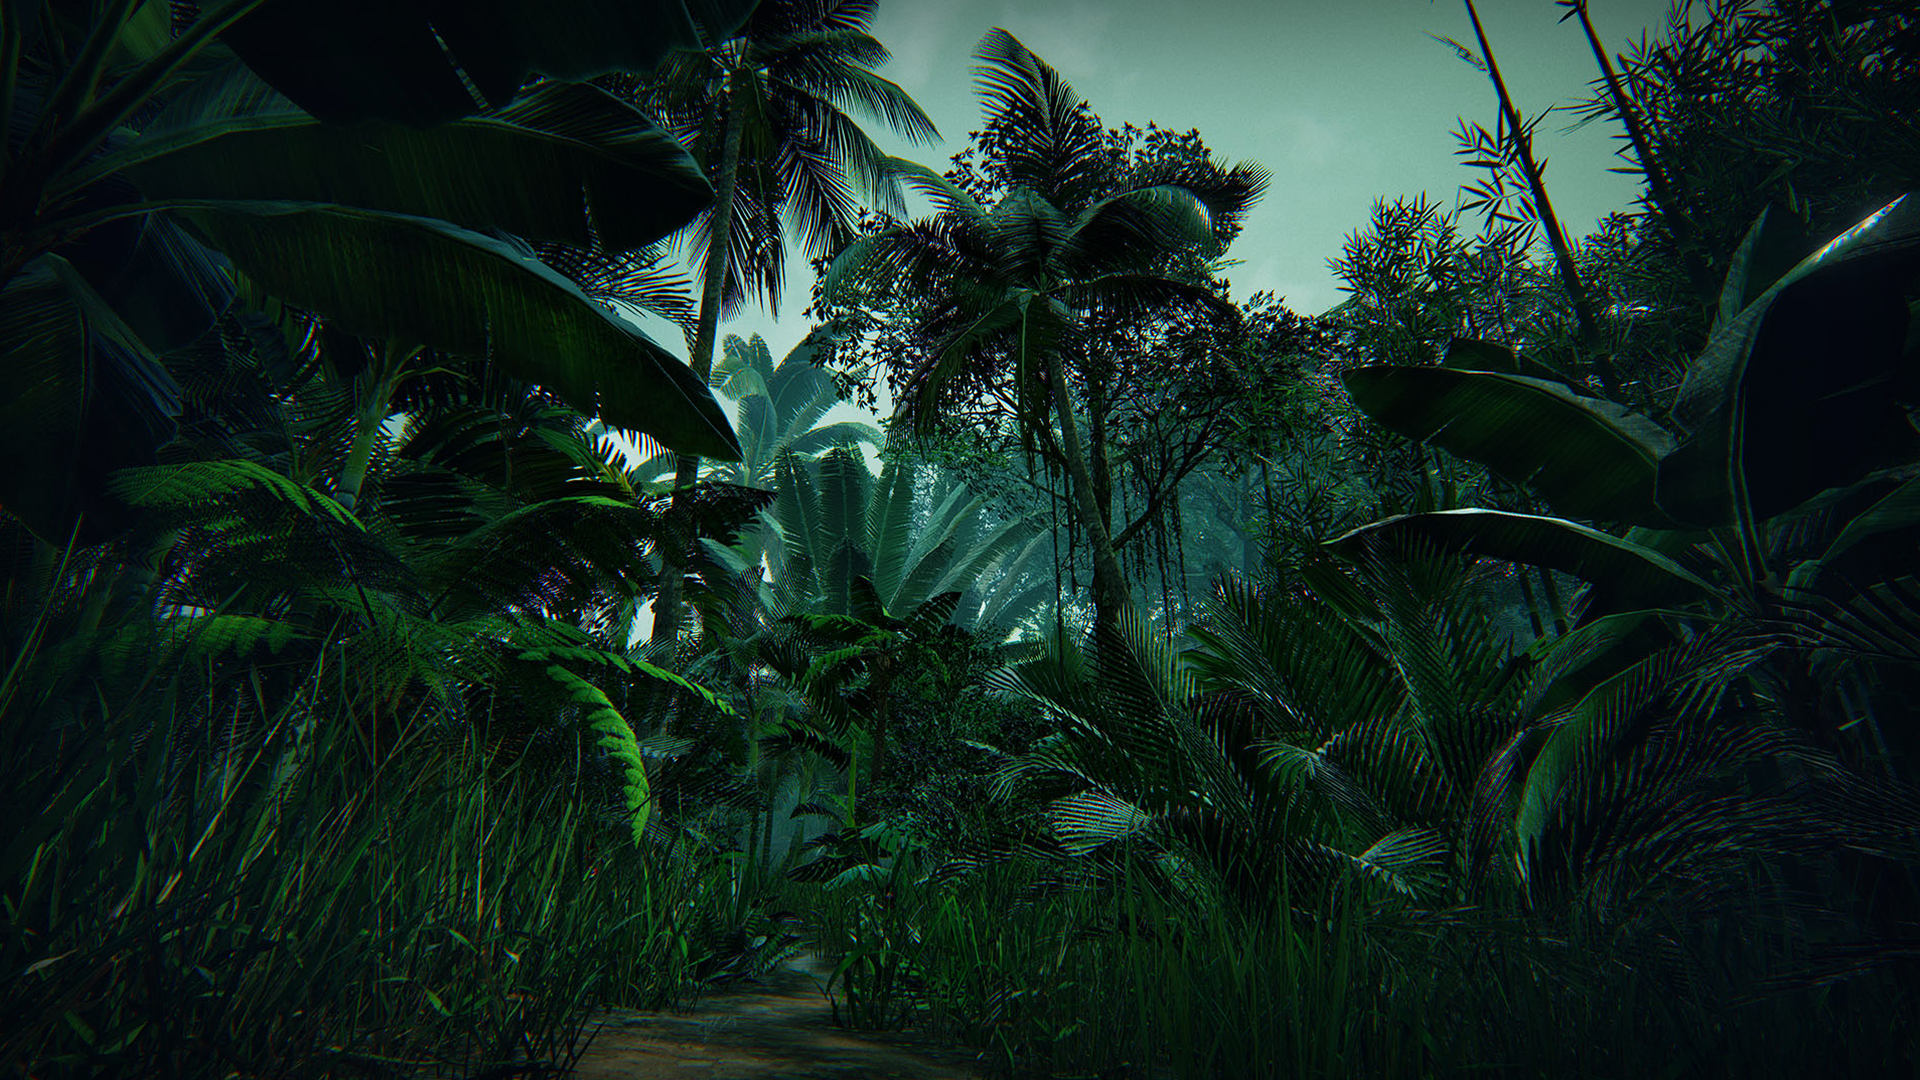 Tropical Forest by Manufactura K4 in Environments - UE4 Marketplace